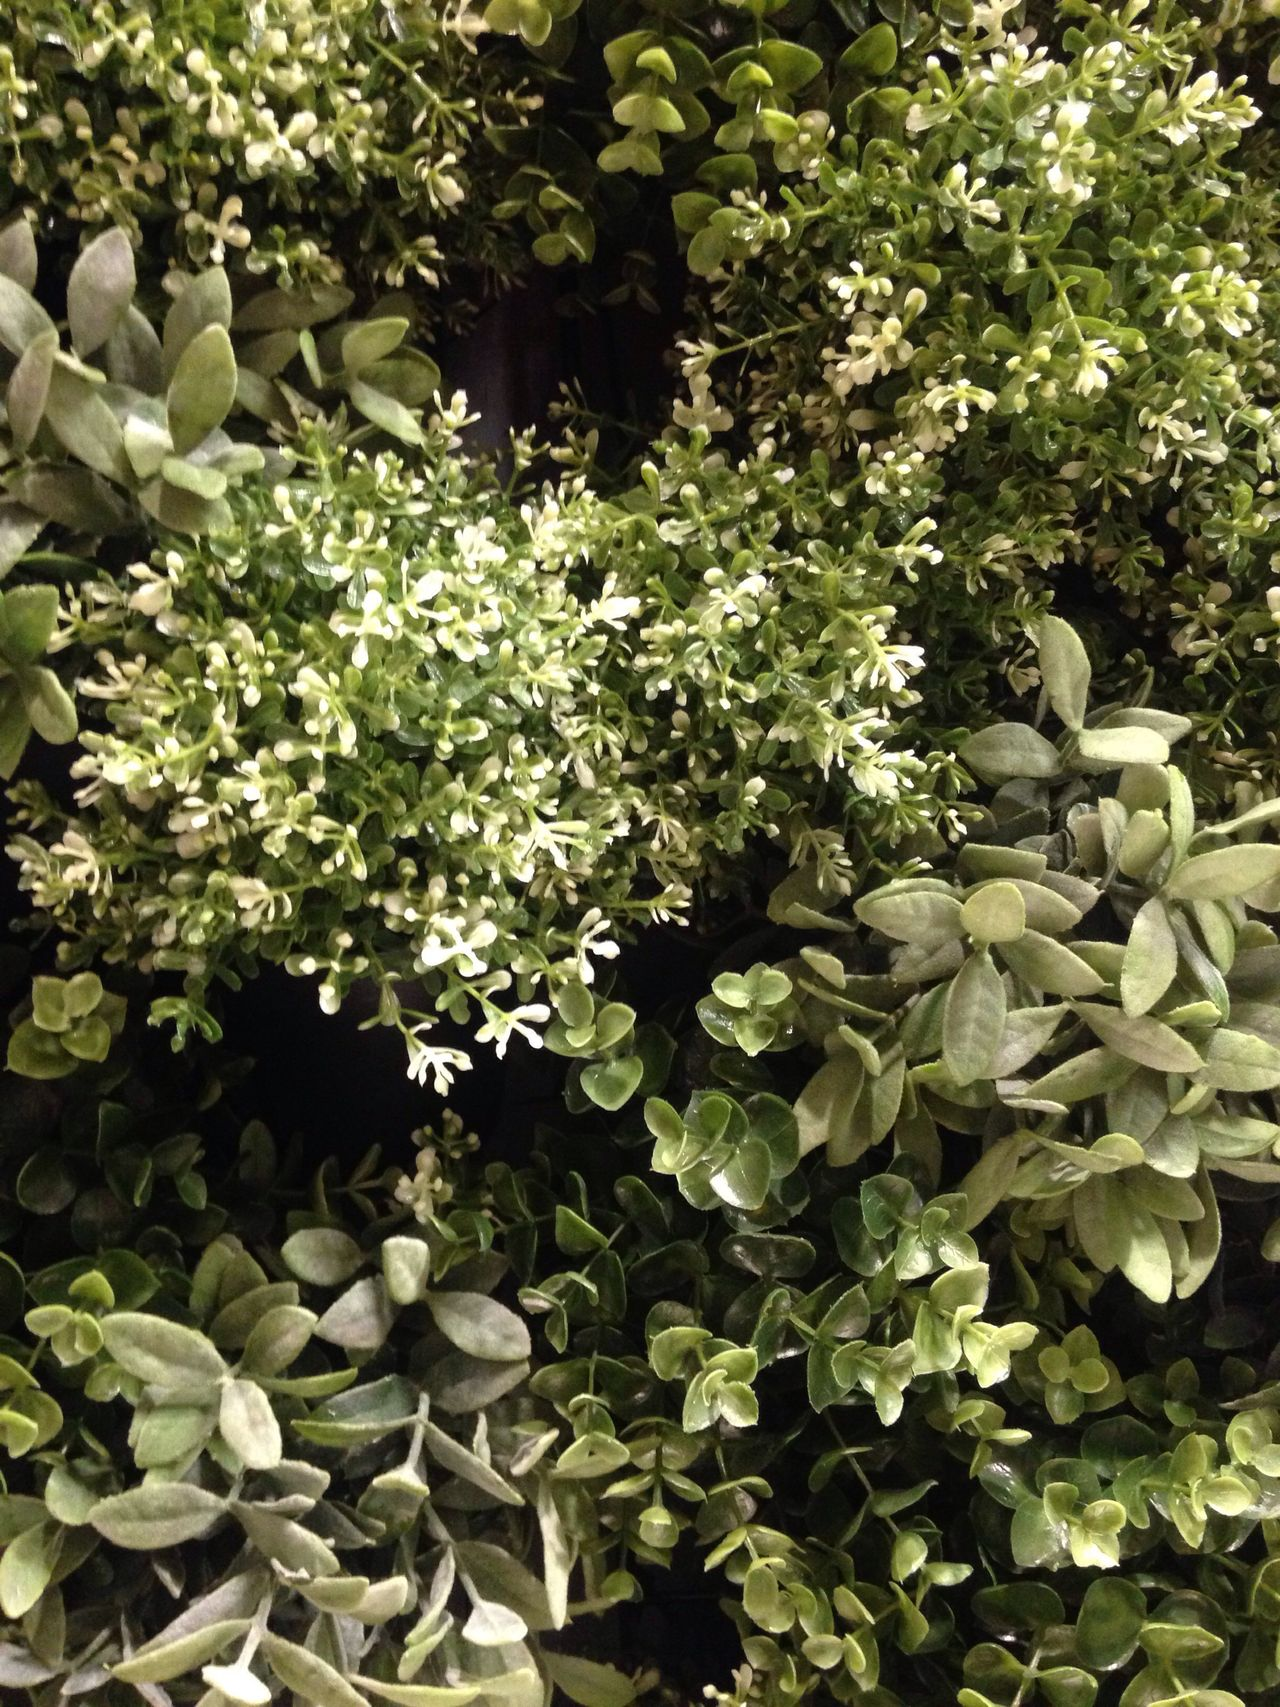 Green Growth Flower Nature Beauty In Nature Green Color Freshness Plant No People Fragility Day Blooming Outdoors Close-up Green Wall Plants 🌱 Pattern, Texture, Shape And Form Textures And Surfaces